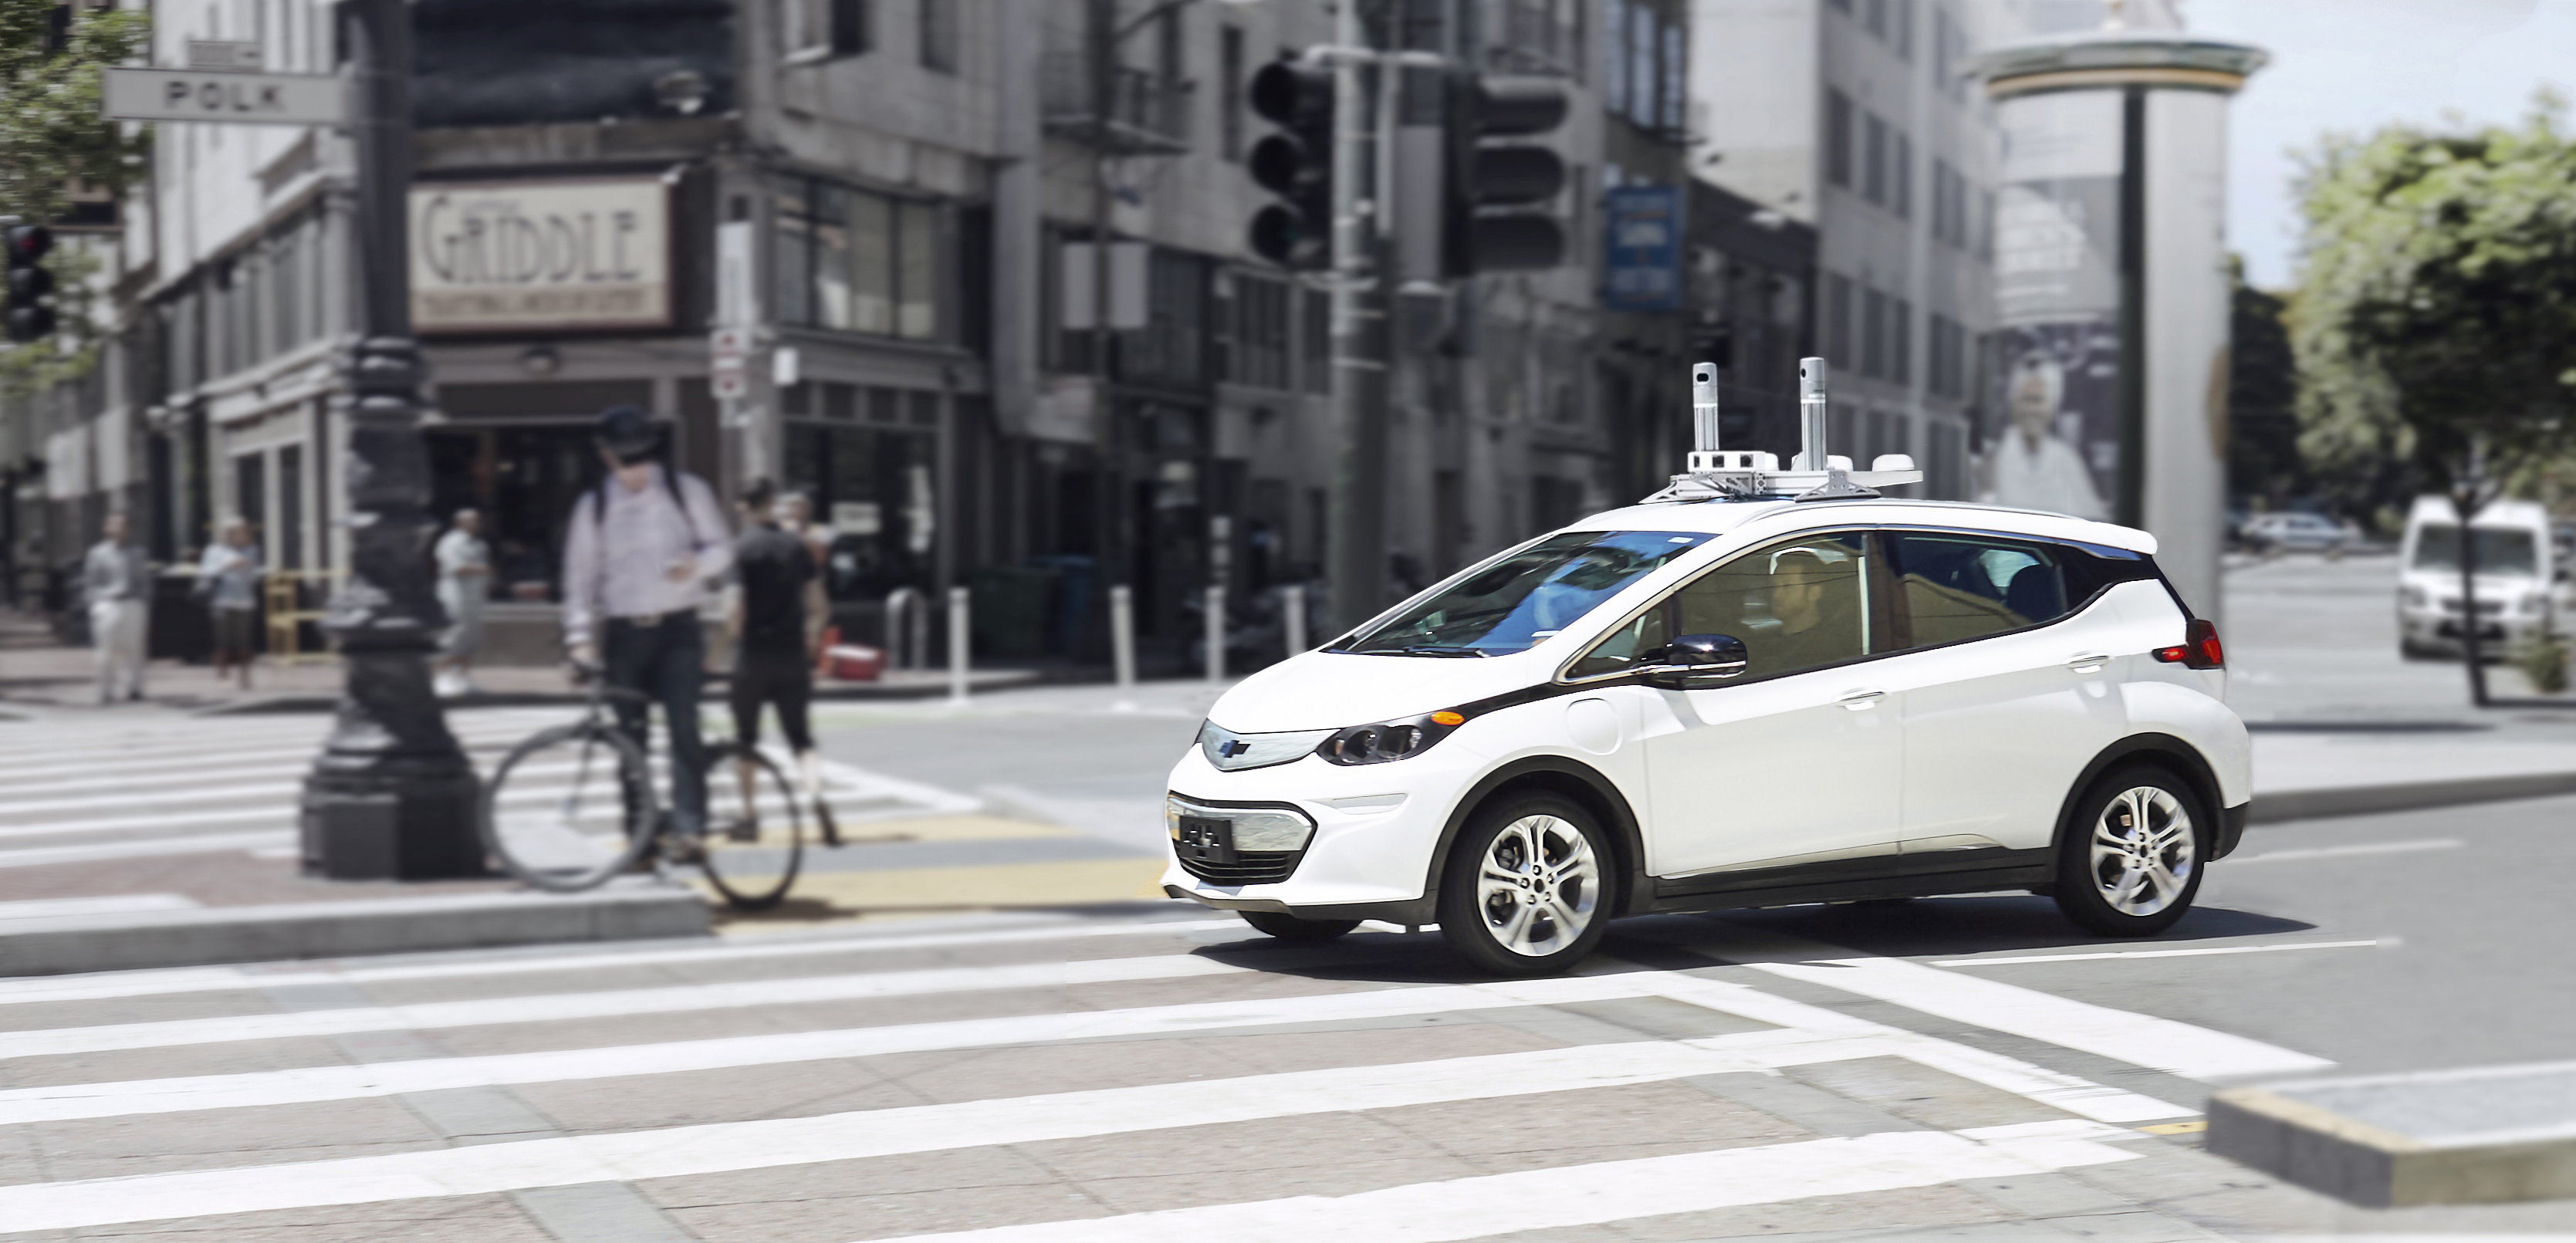 A Chevy Bolt equipped with self-driving technology cruises the streets of San Francisco.